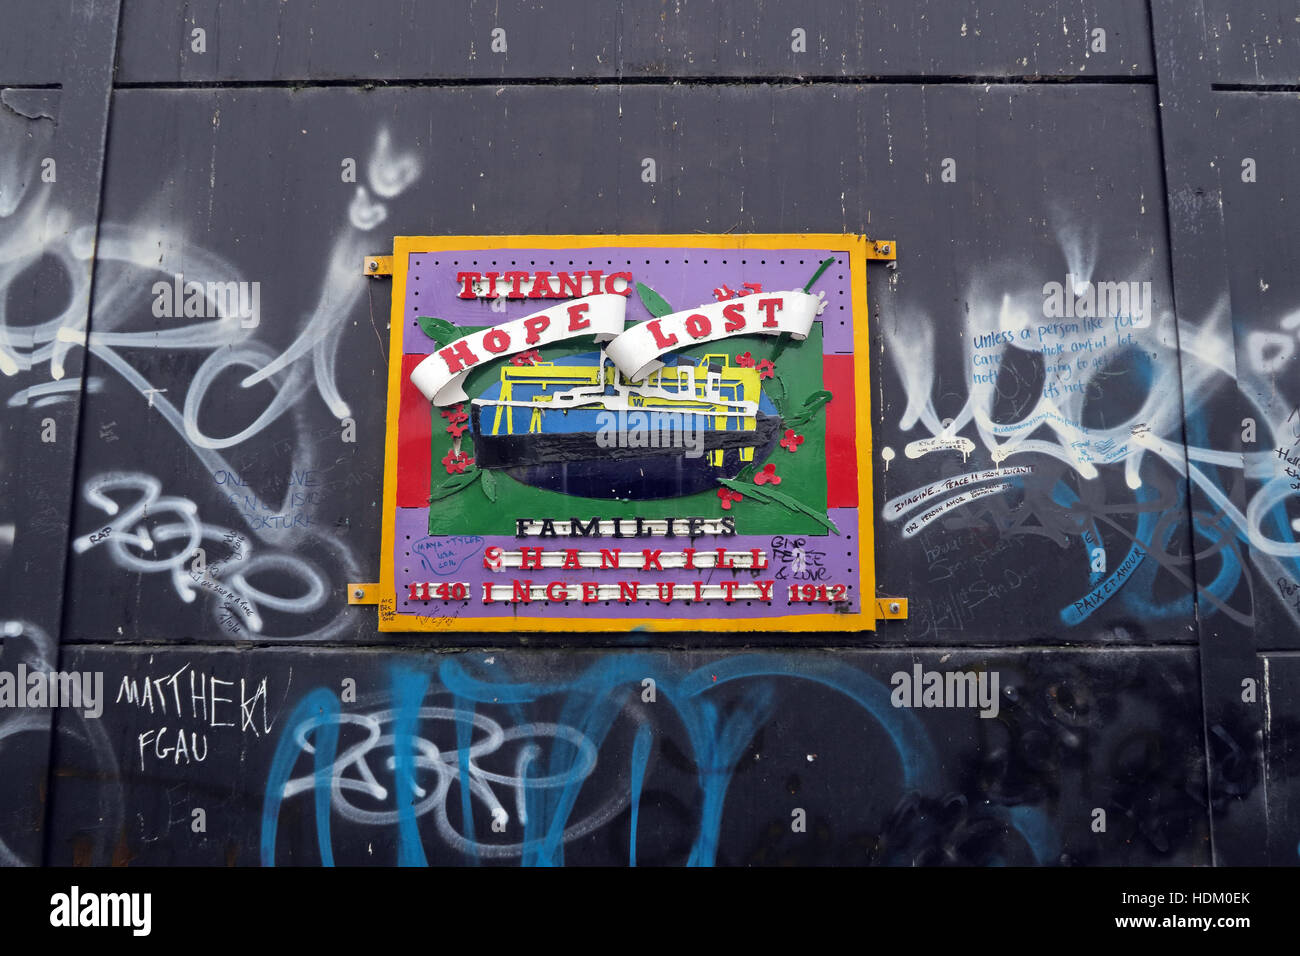 Northern Ireland,Peace,Wall,Cupar way,West Belfast,Belfast,Irish,art,artworks,artwork,Titanic,Hope,Lost,Shankill,ingenuity,1912,ingenuity,rd,Road,boat,ship,weld,welded,families,family,Berlin wall,Shankill ingenuity,RMS Titanic,Titanic Mural Shankill Road,GoTonySmith,@HotpixUK,Tony,Smith,UK,GB,Great,Britain,United,Kingdom,Irish,British,Ireland,problem,with,problem with,issue with,NI,Northern,Northern Ireland,Belfast,City,Centre,Art,Artists,the,troubles,The Troubles,Good Friday Agreement,Peace,honour,painting,wall,walls,tribute,Unionist,unionism,Protestant,Catholic,republican,Sinn Fein,community,Fight,Justice,West,Beal,feirste,martyrs,social,tour,tourism,tourists,urban,six,counties,6,backdrop,county,Antrim,UVF,DUP,British,GB,Empire,Buy Pictures of,Buy Images Of,Images of,Stock Images,Tony Smith,United Kingdom,Great Britain,British Isles,Belfast protestant community,Peoples army,Belfast catholic community,Irelands Berlin wall